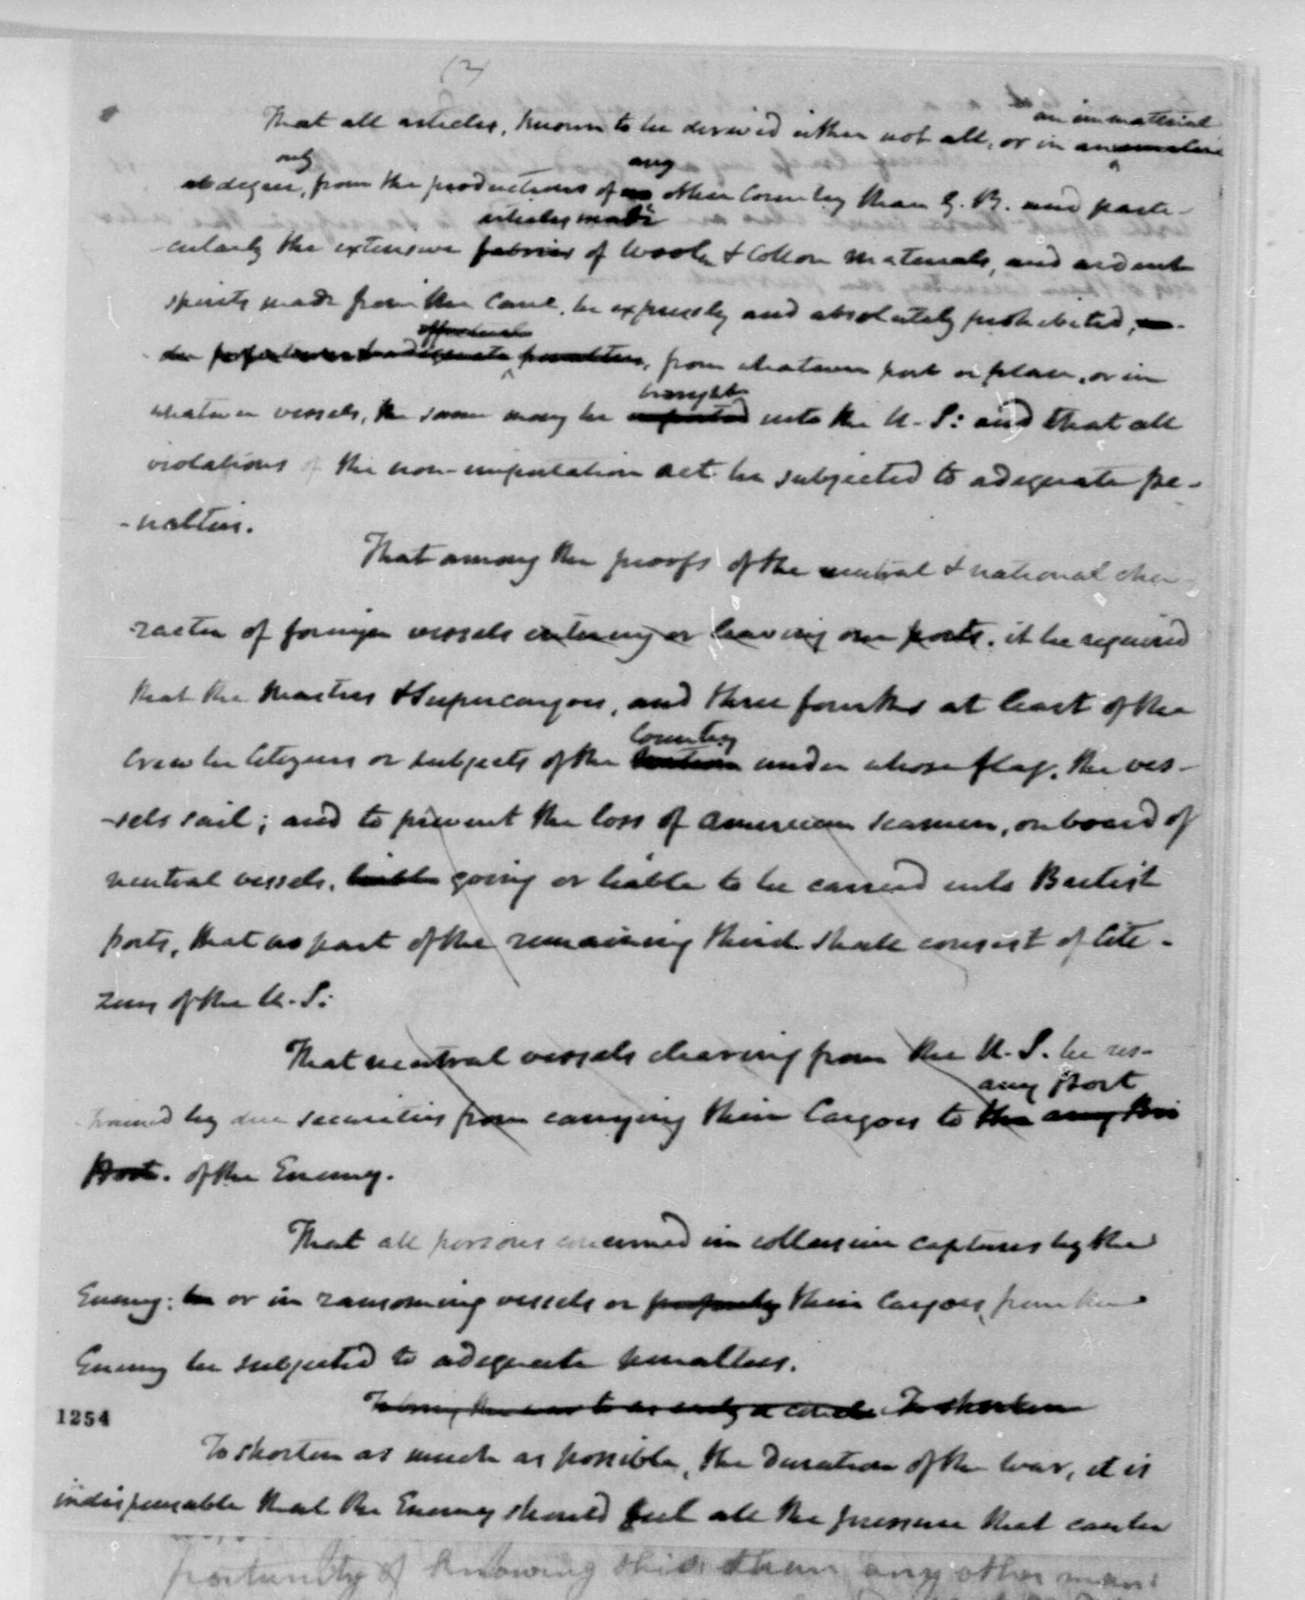 James Madison, December 9, 1813. Draft of message to Congress during the war.